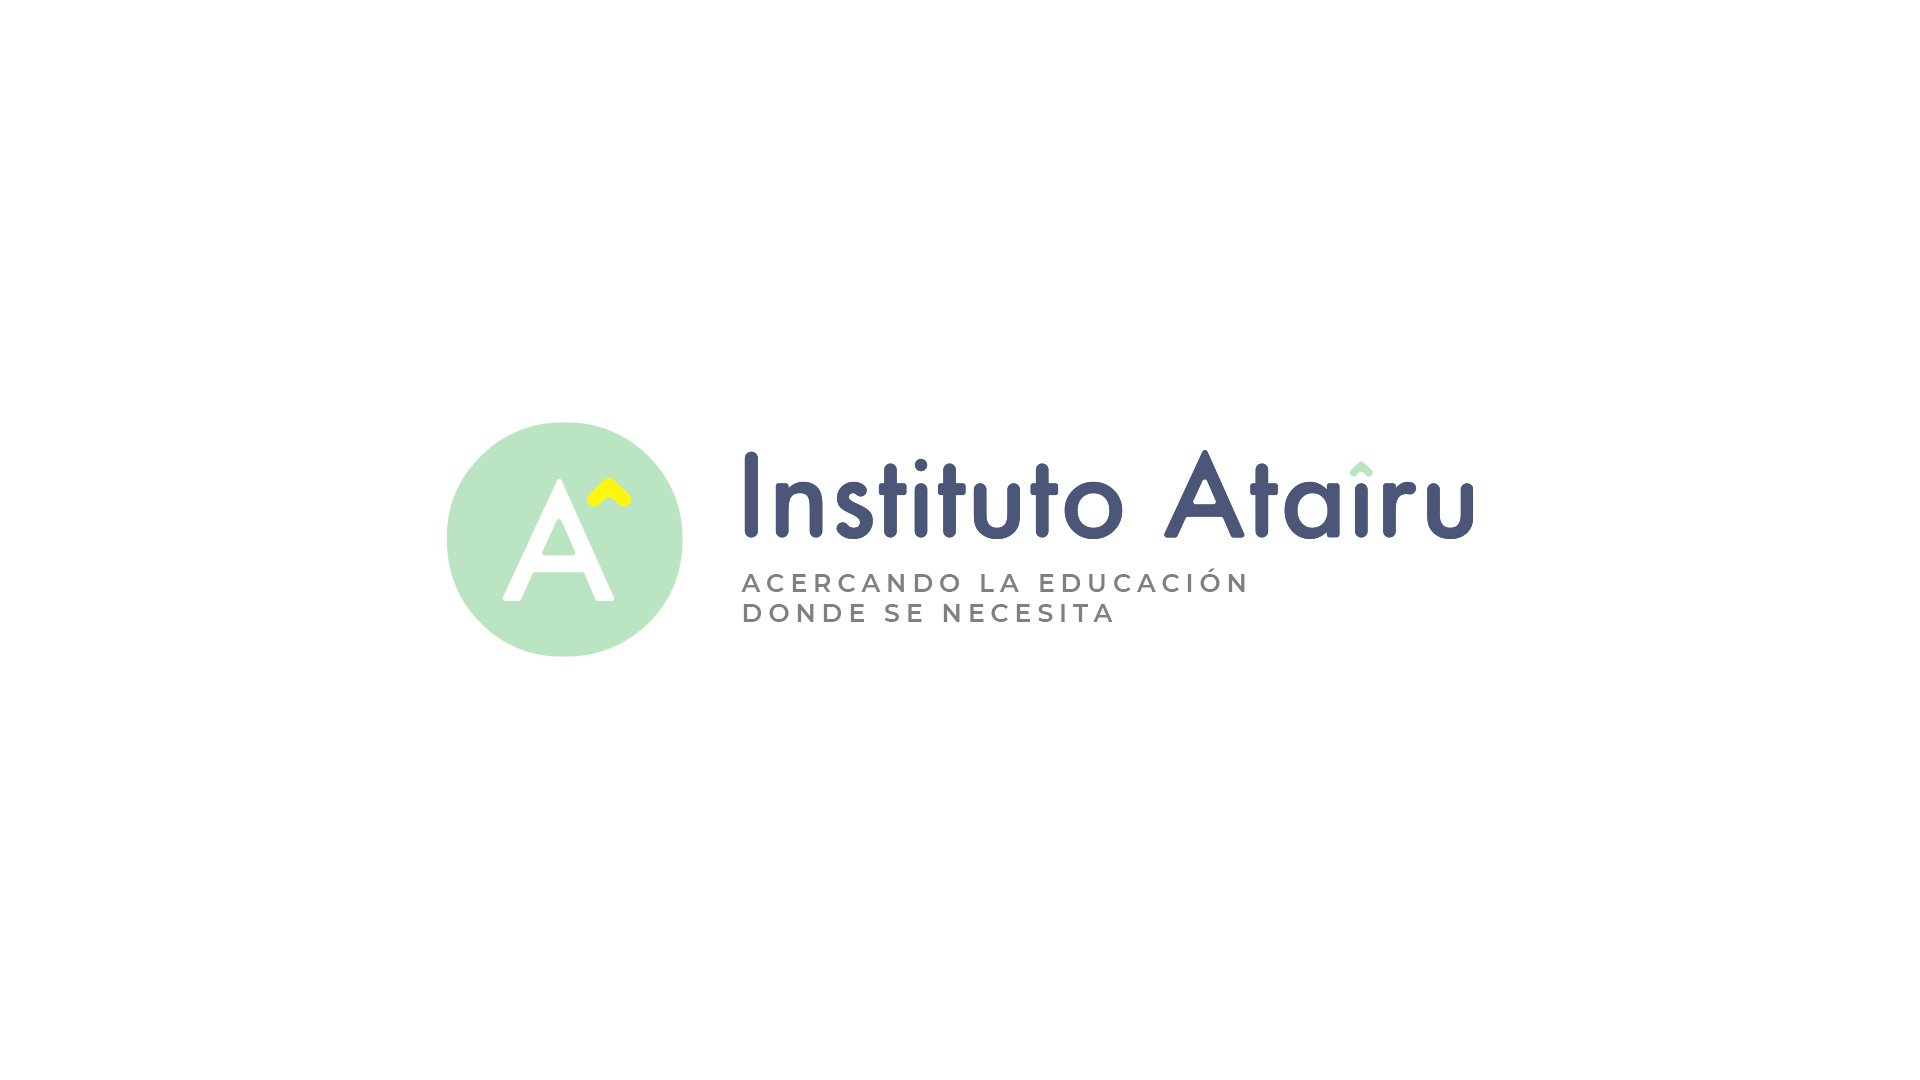 INSTITUTO_ATAIRU_LOGO